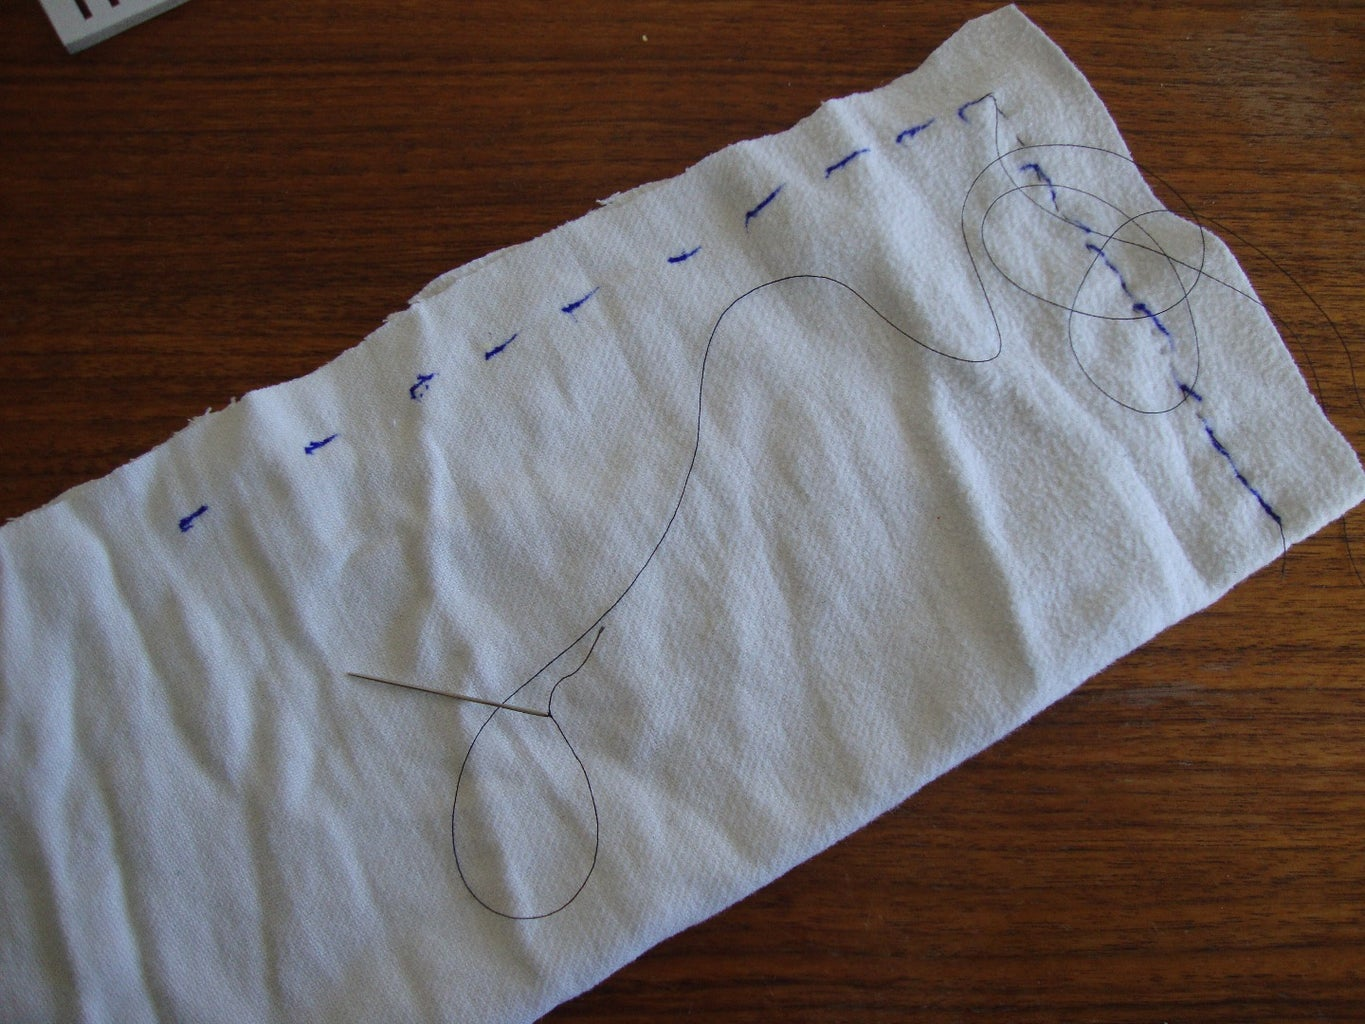 Test You Sewing Skills